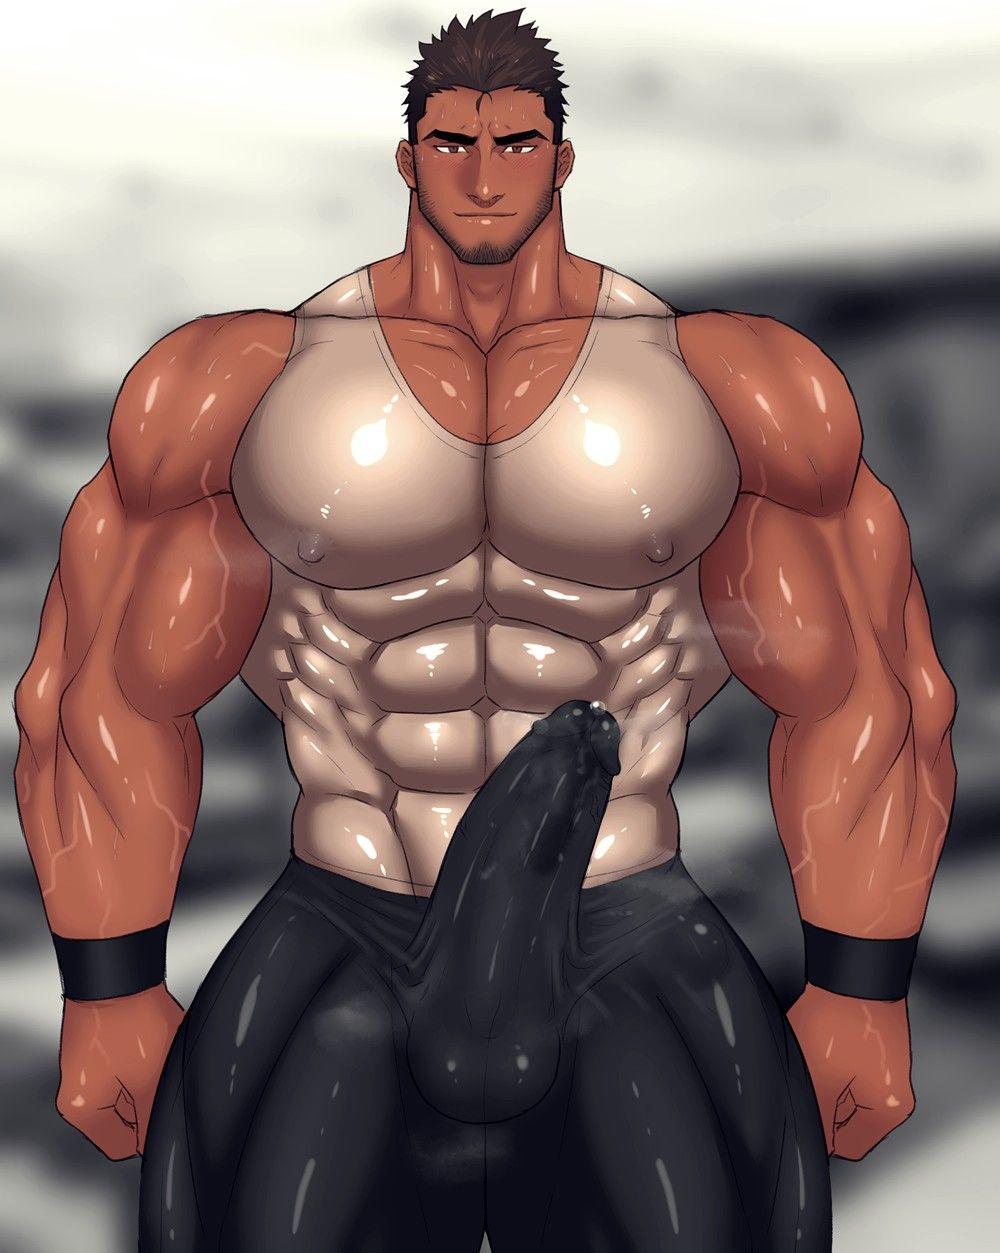 Gay muscle bara